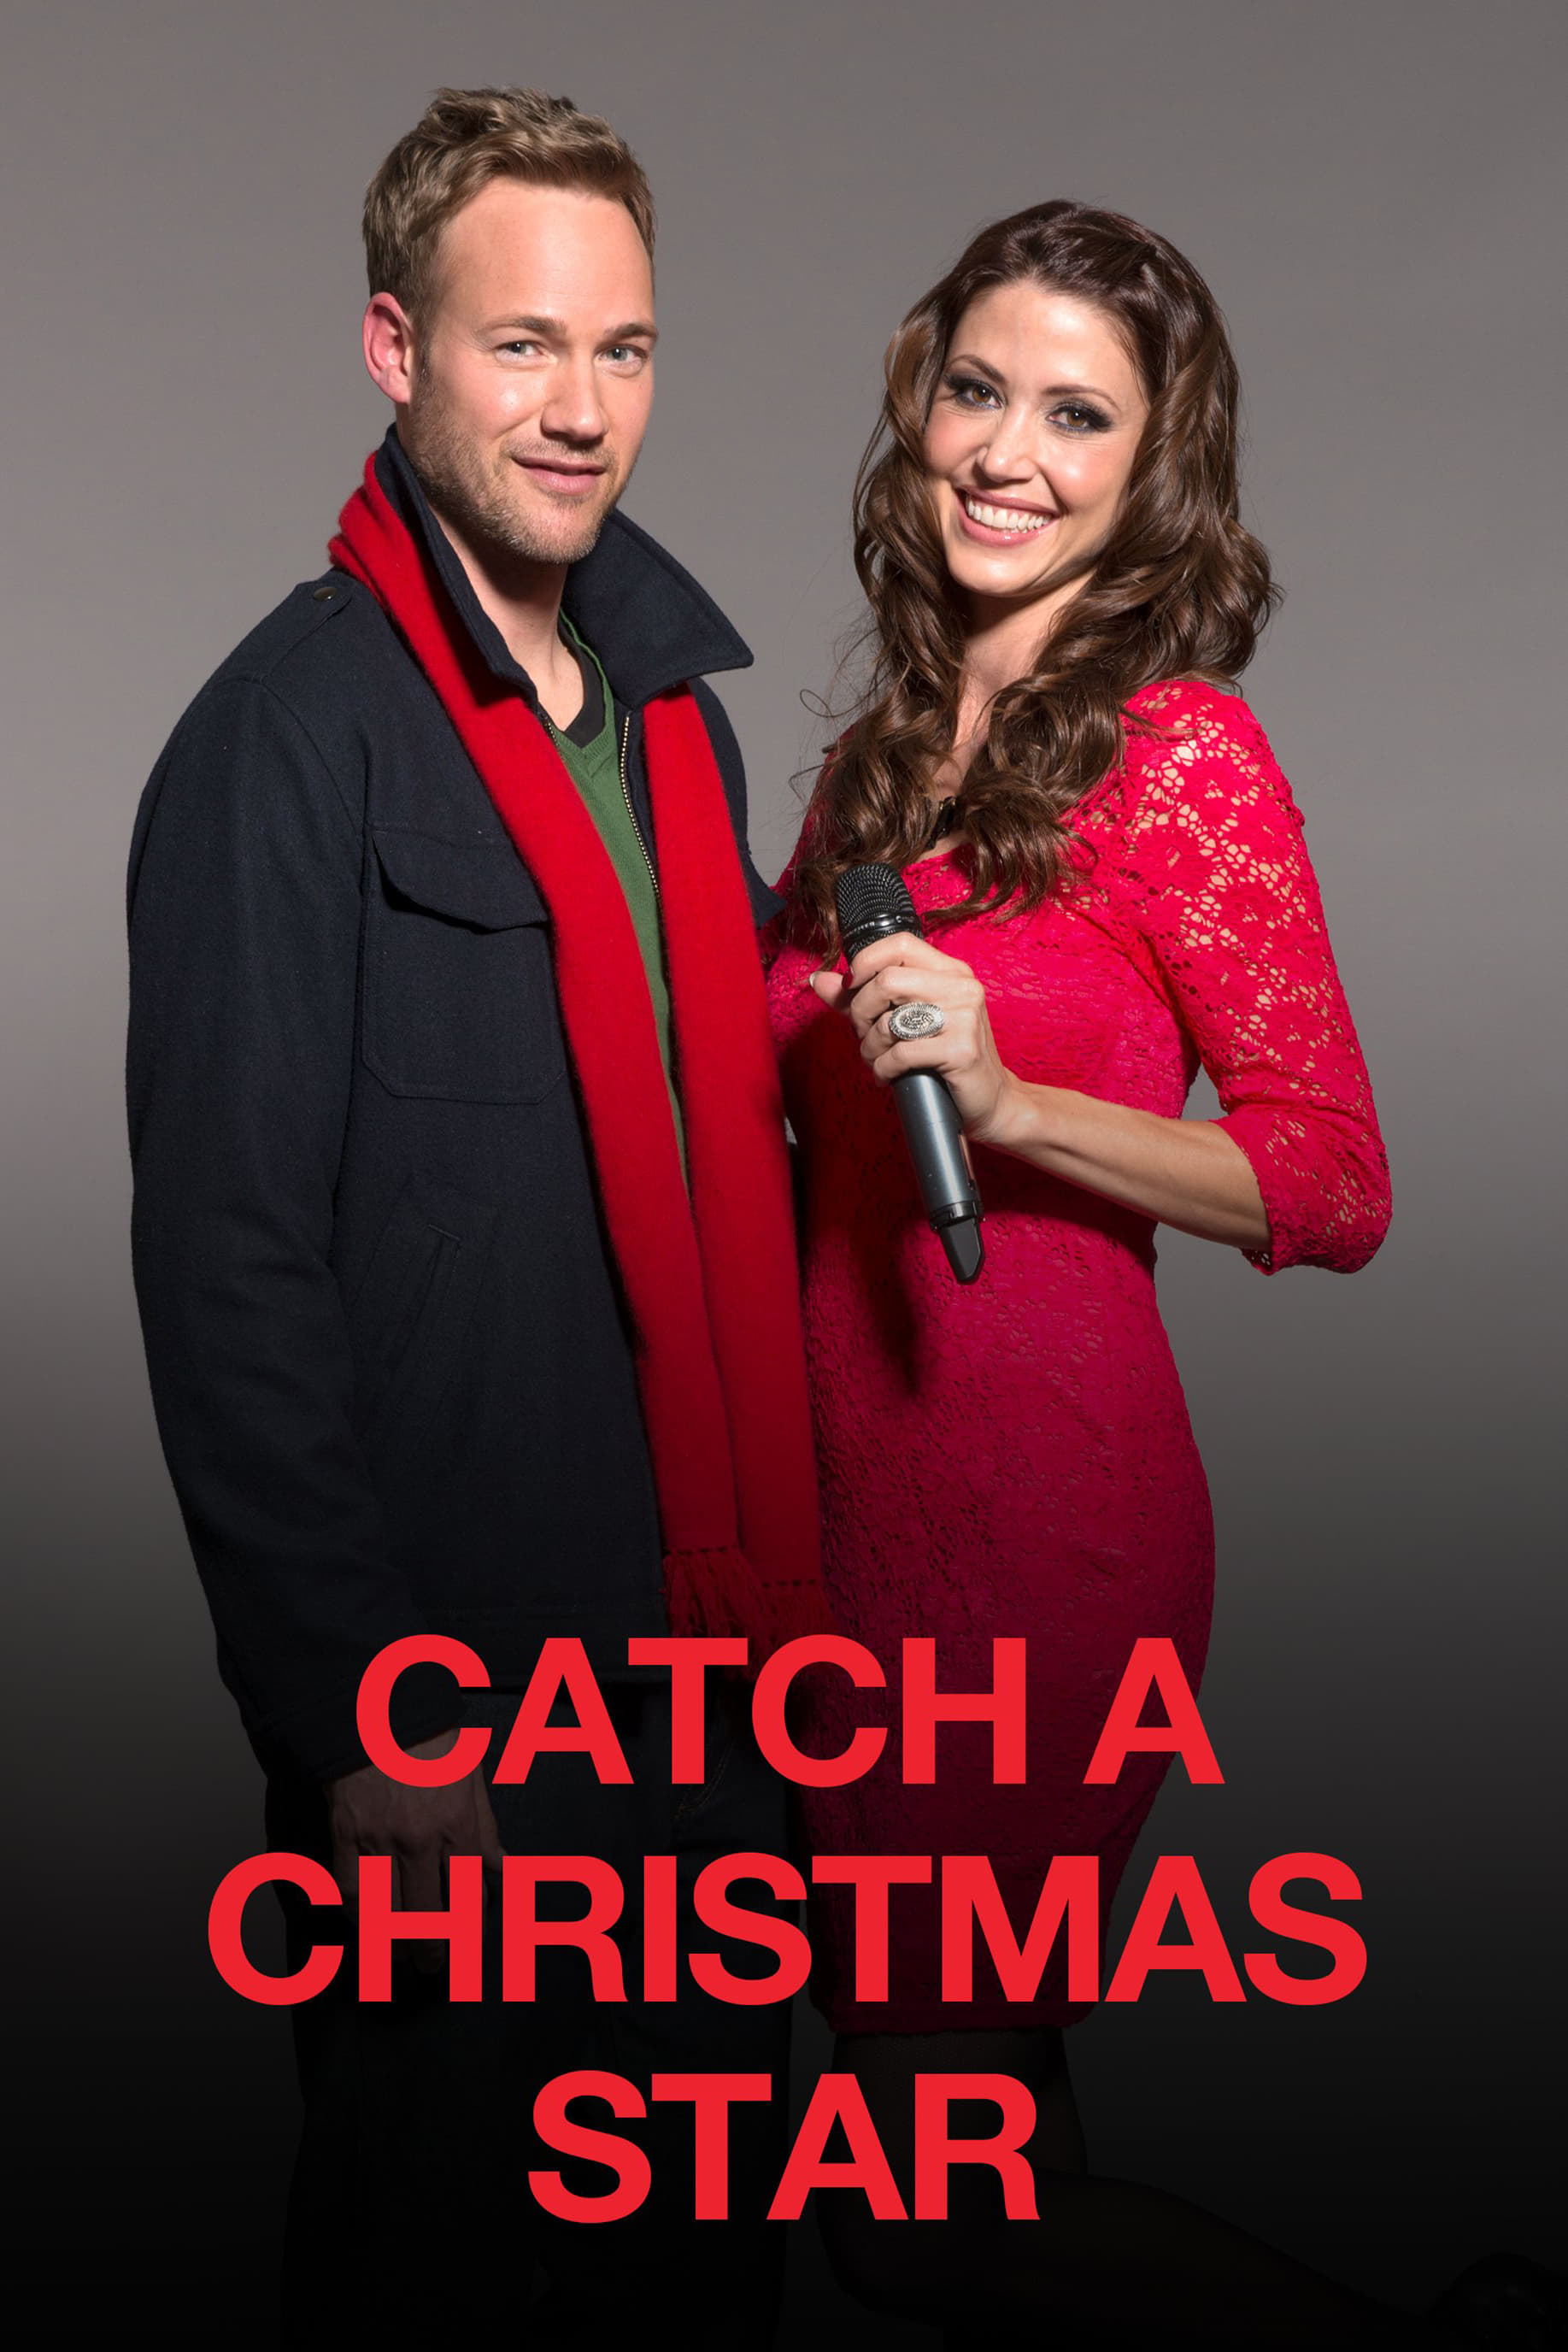 Catch A Christmas Star.Catch A Christmas Star 2013 Posters The Movie Database